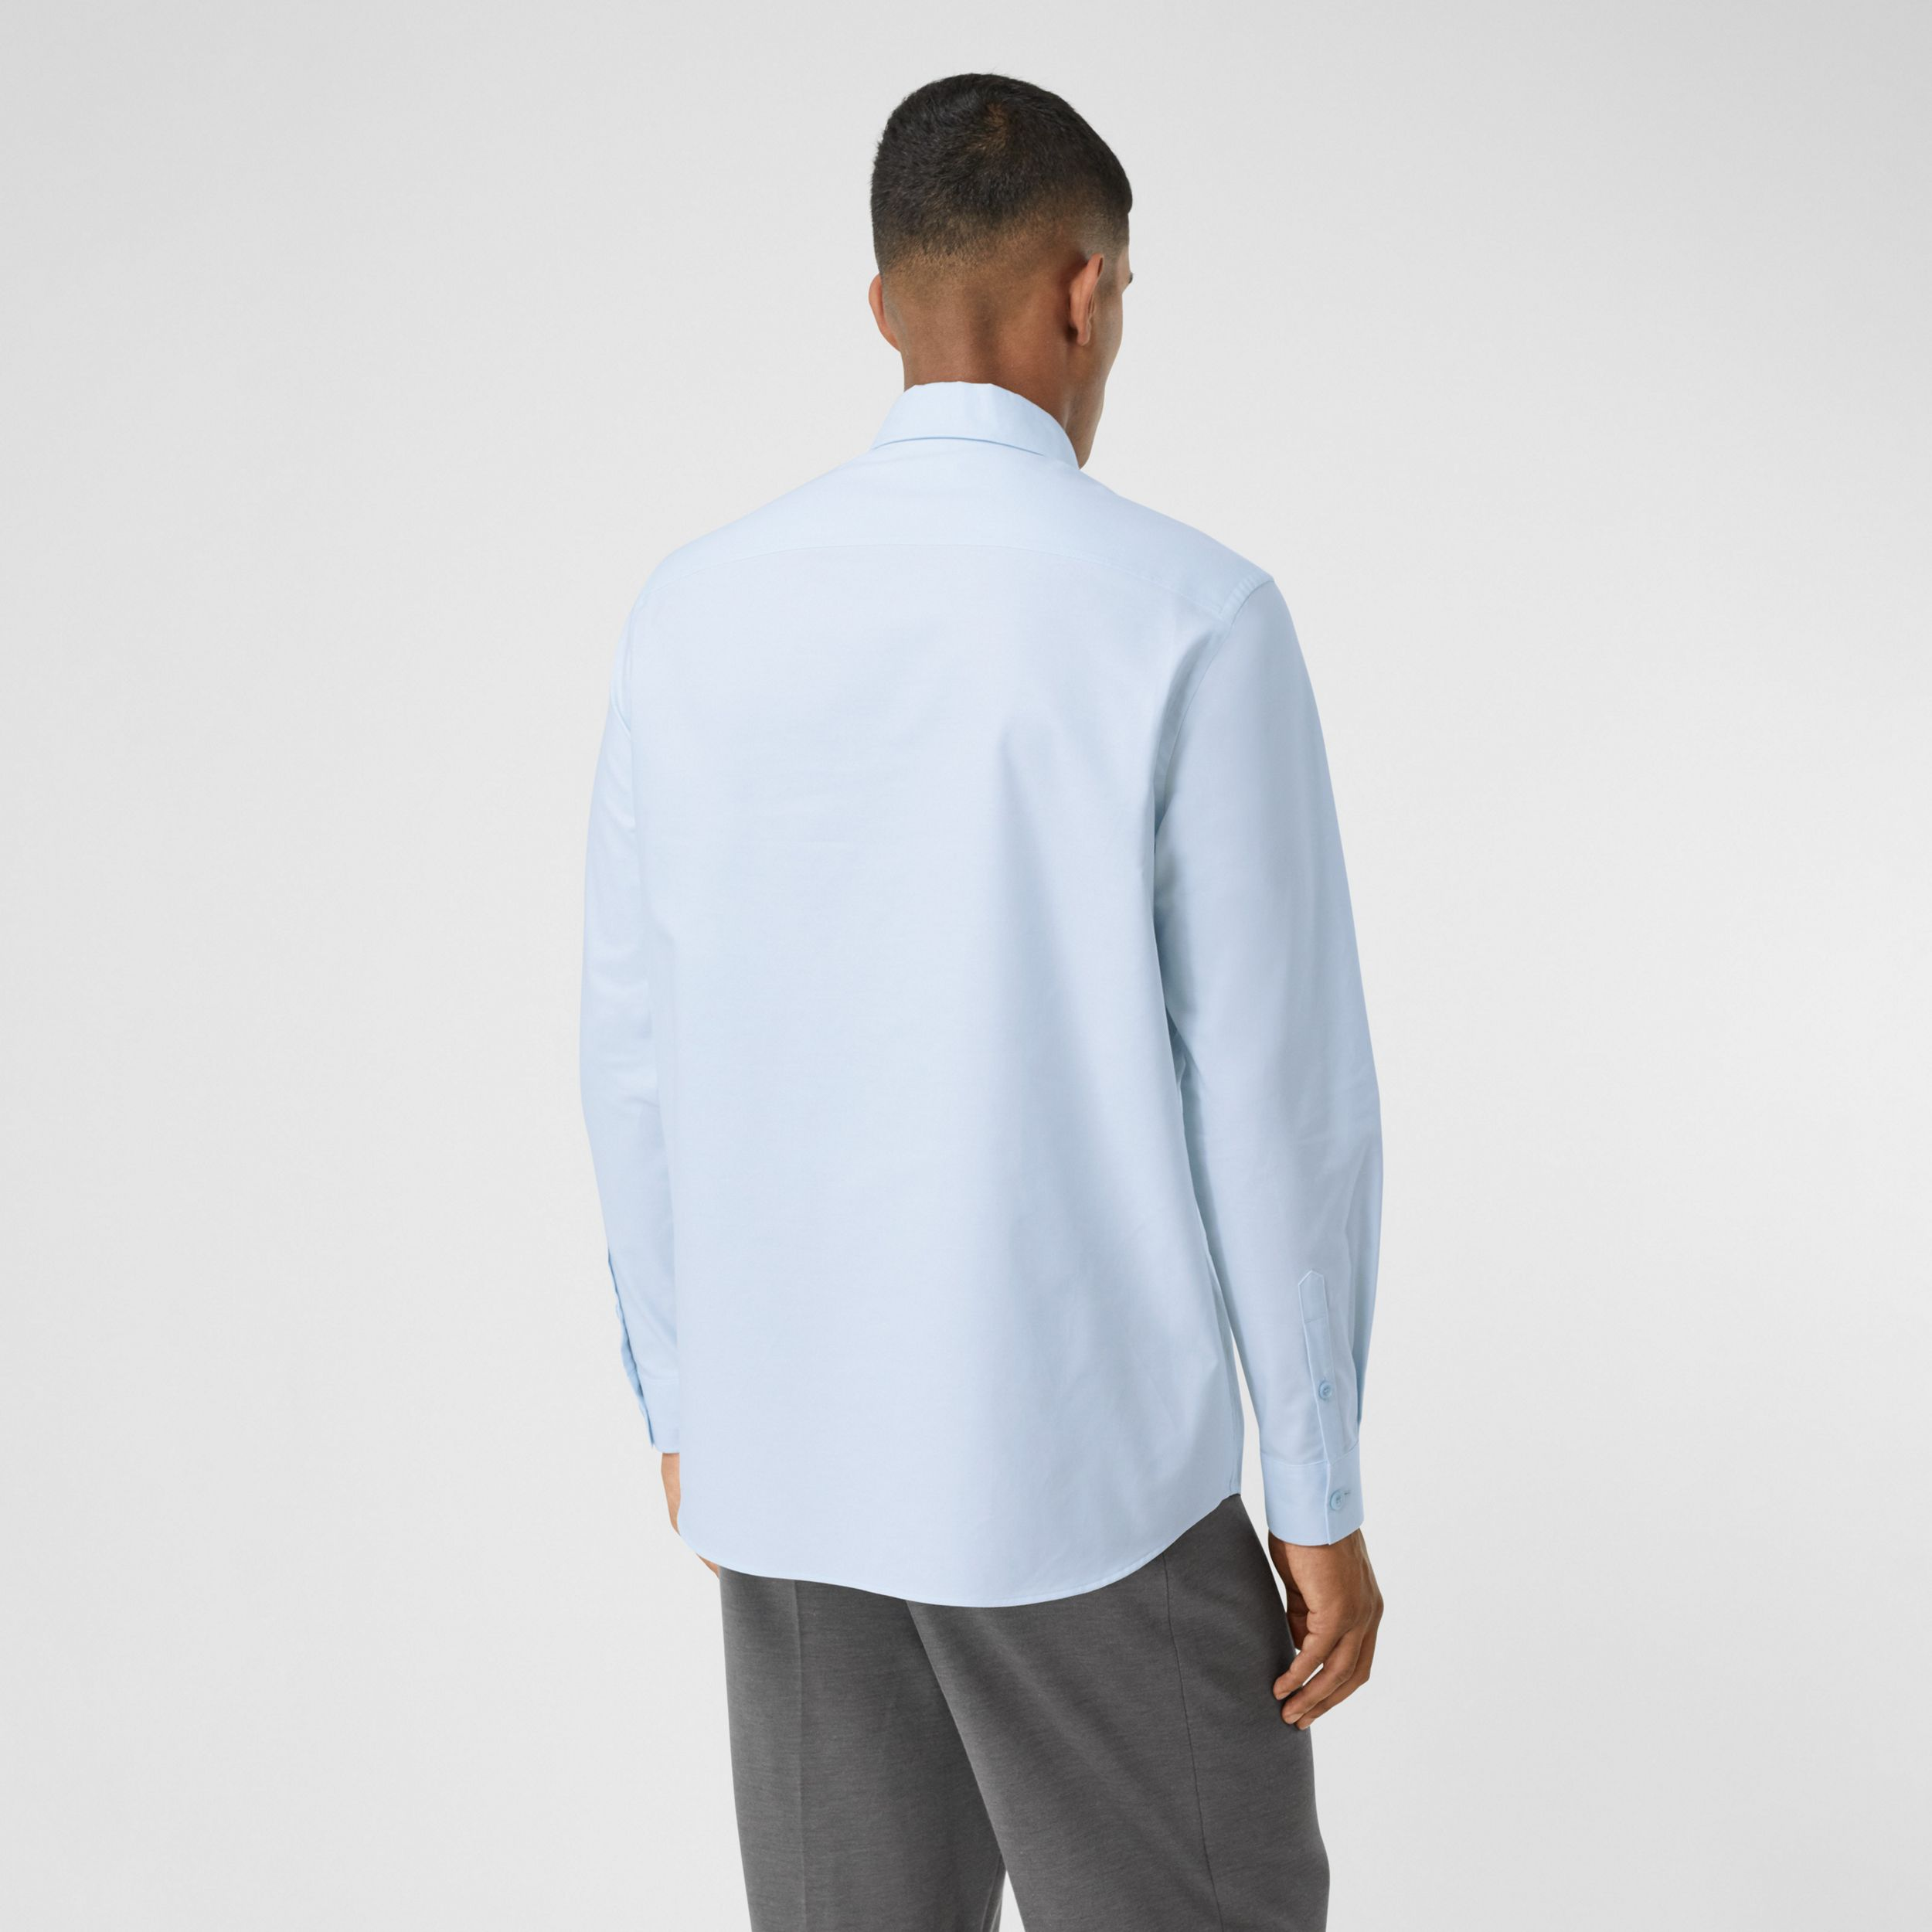 Swan and Slogan Appliqué Cotton Oversized Shirt in Sky Blue - Men | Burberry - 3